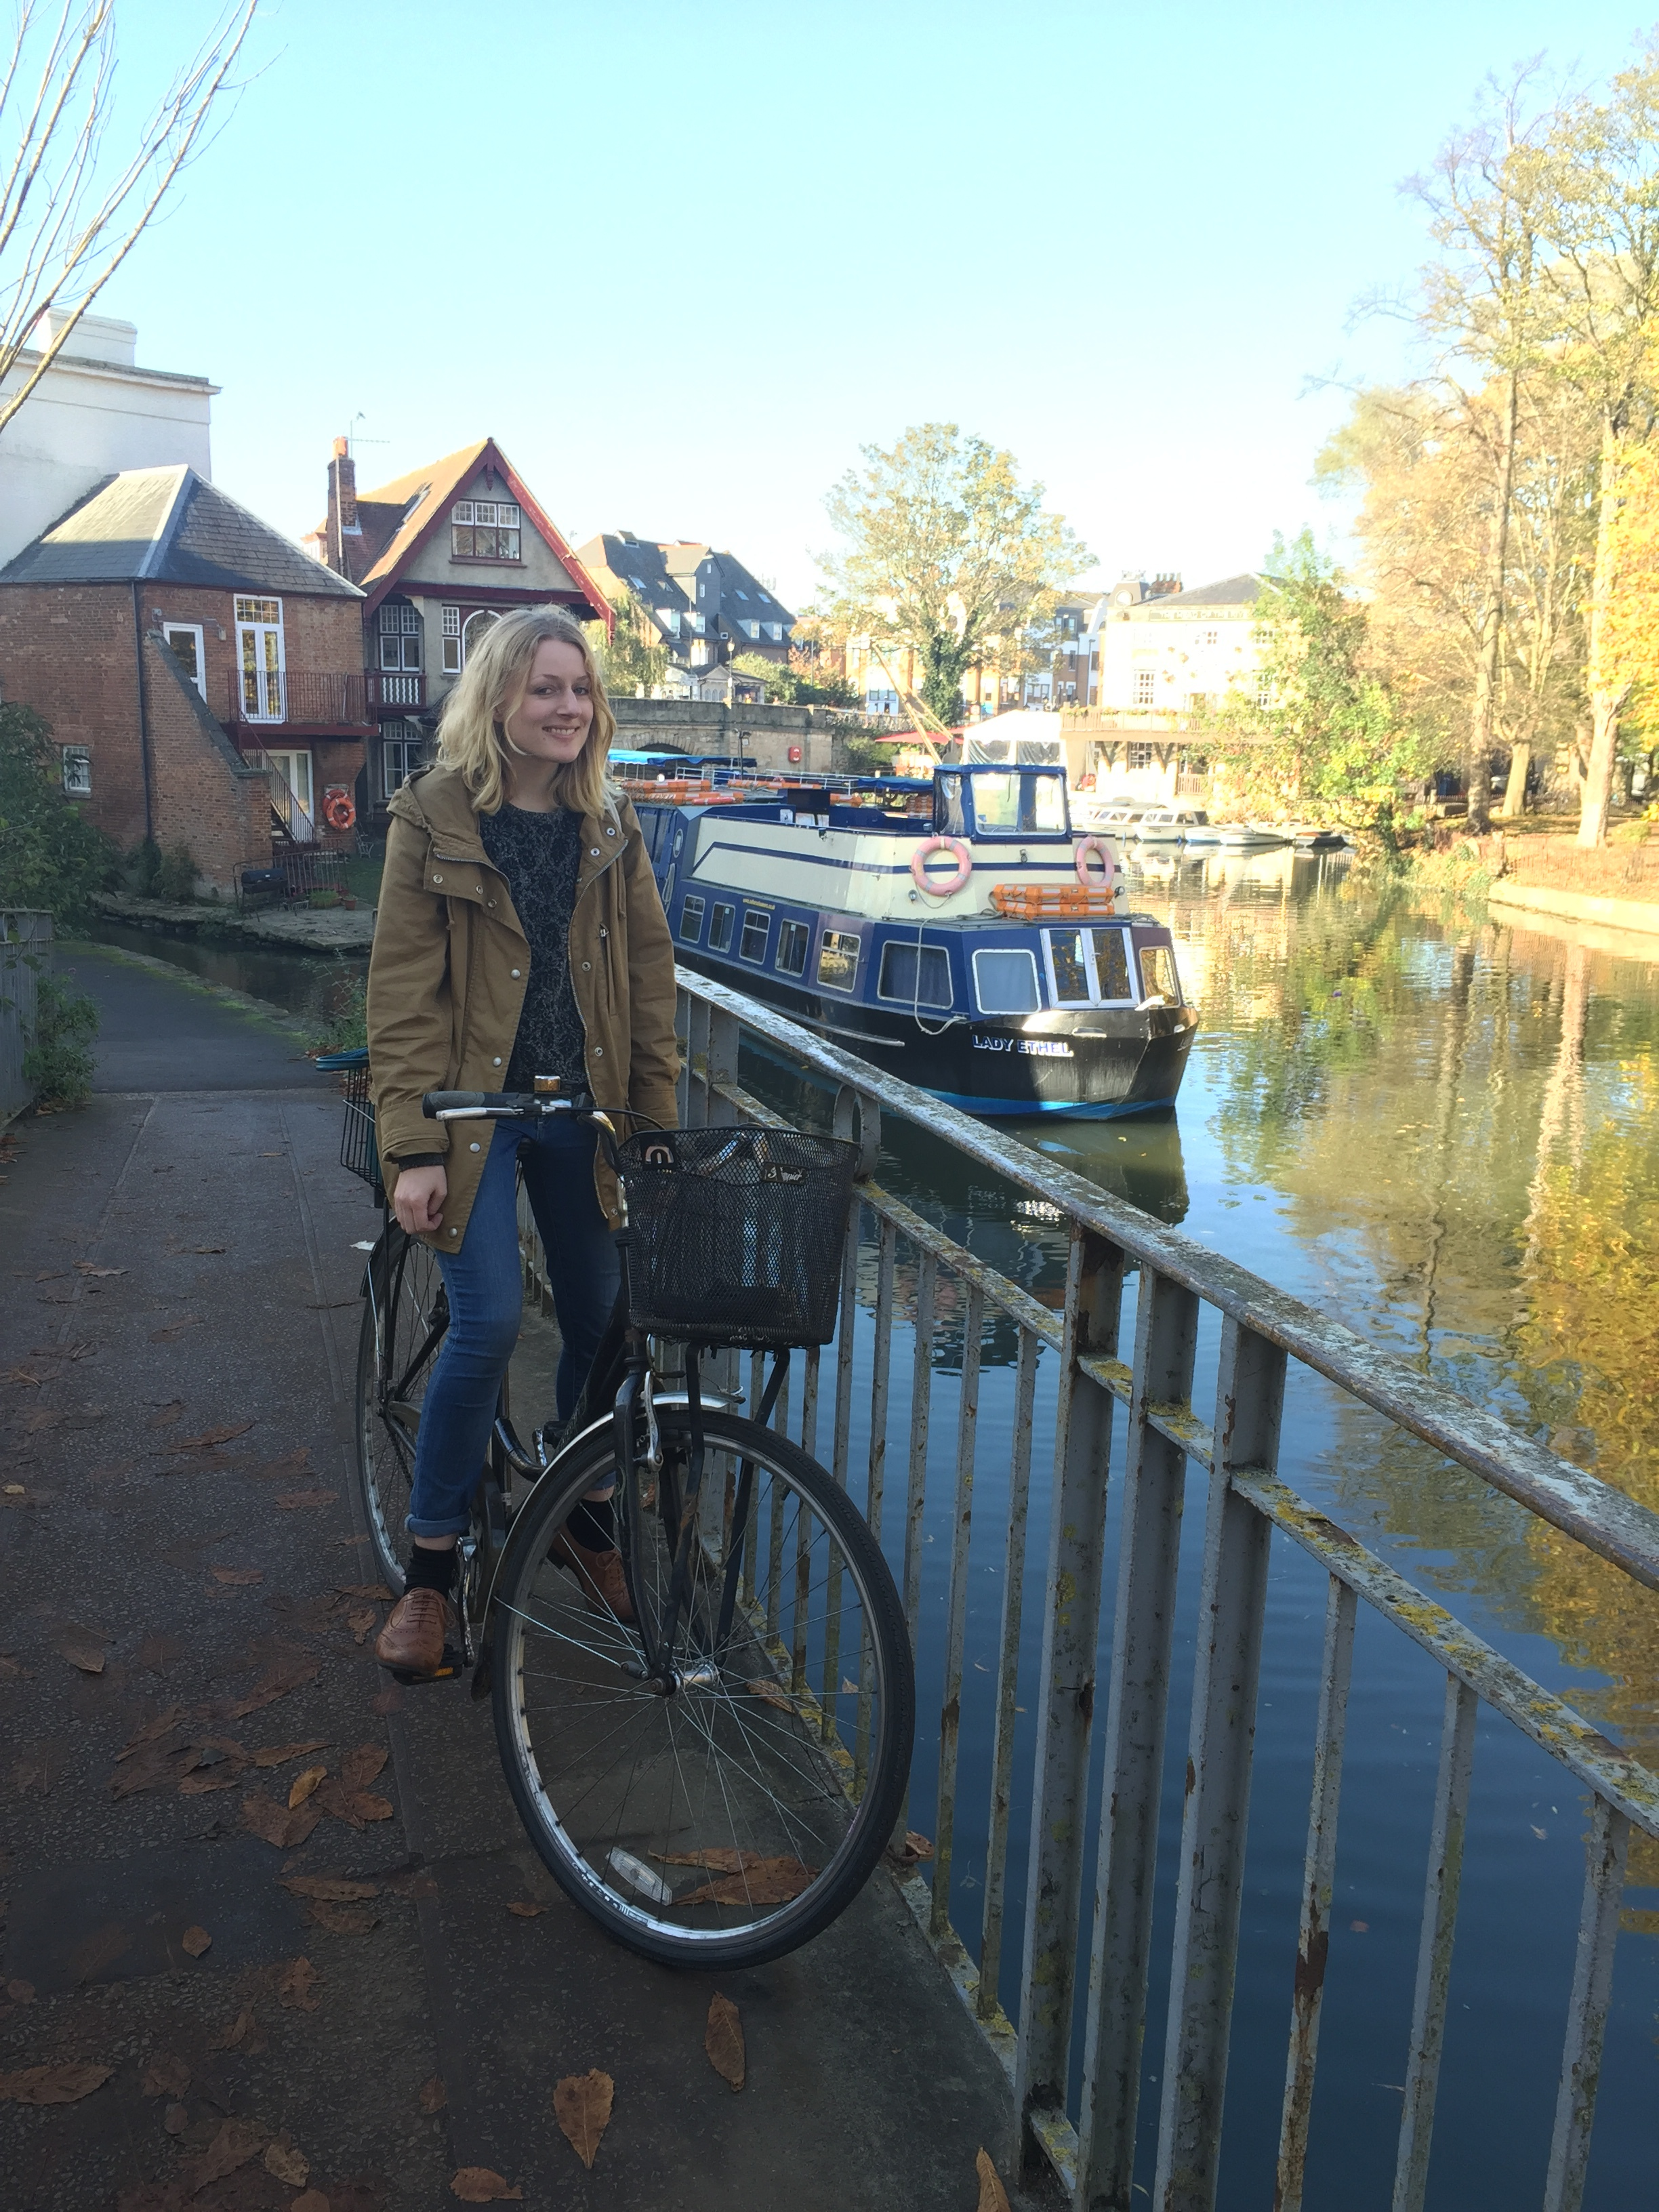 This is me with my bike that rattles as I cycle because the lock jangles in the basket. All the best bikes rattle.